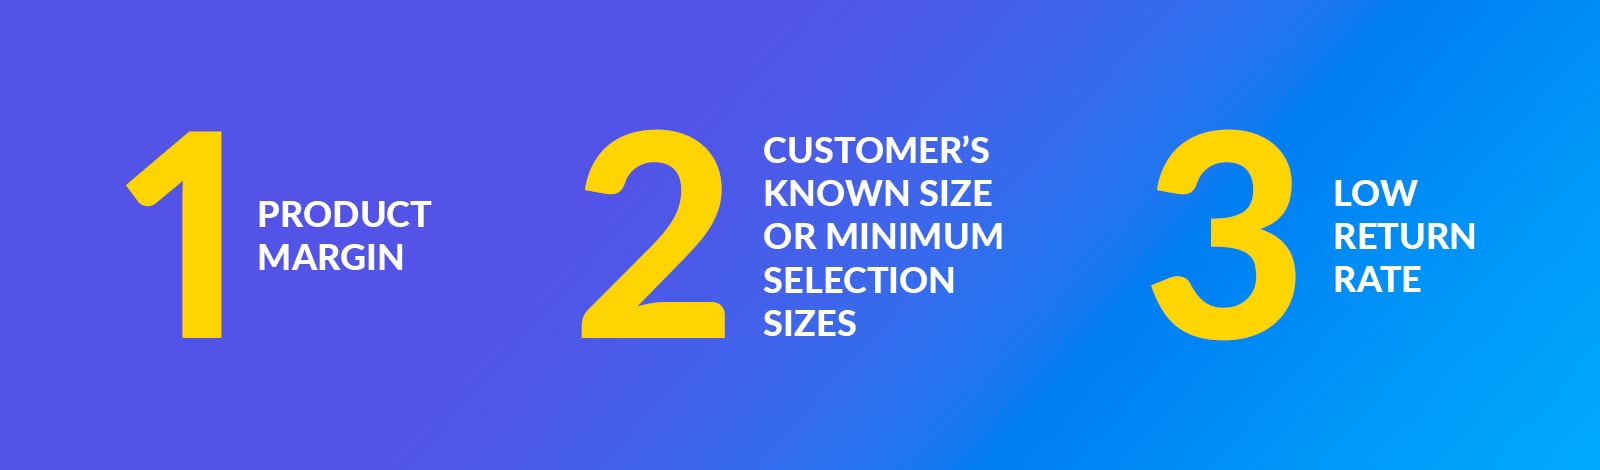 Online Personalization - Product recommendation model